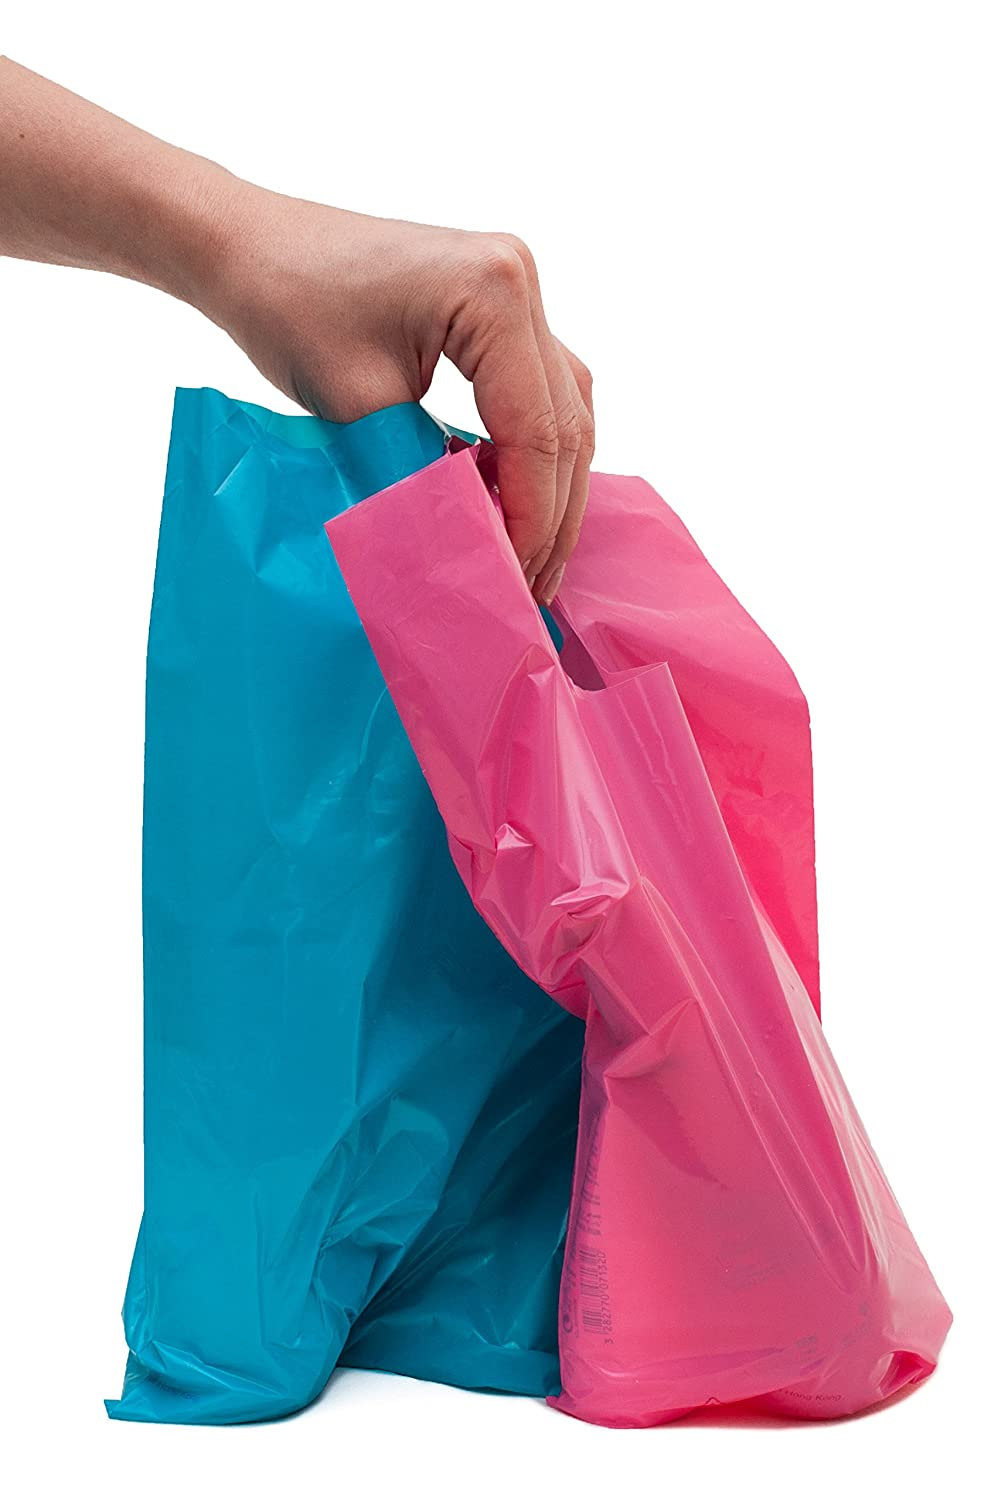 "200 small glossy pink & teal plastic merchandise bags w/die cut handles 9x12"", retail shopping bags perfect for small shops & stores, trade shows, garage sales & events"